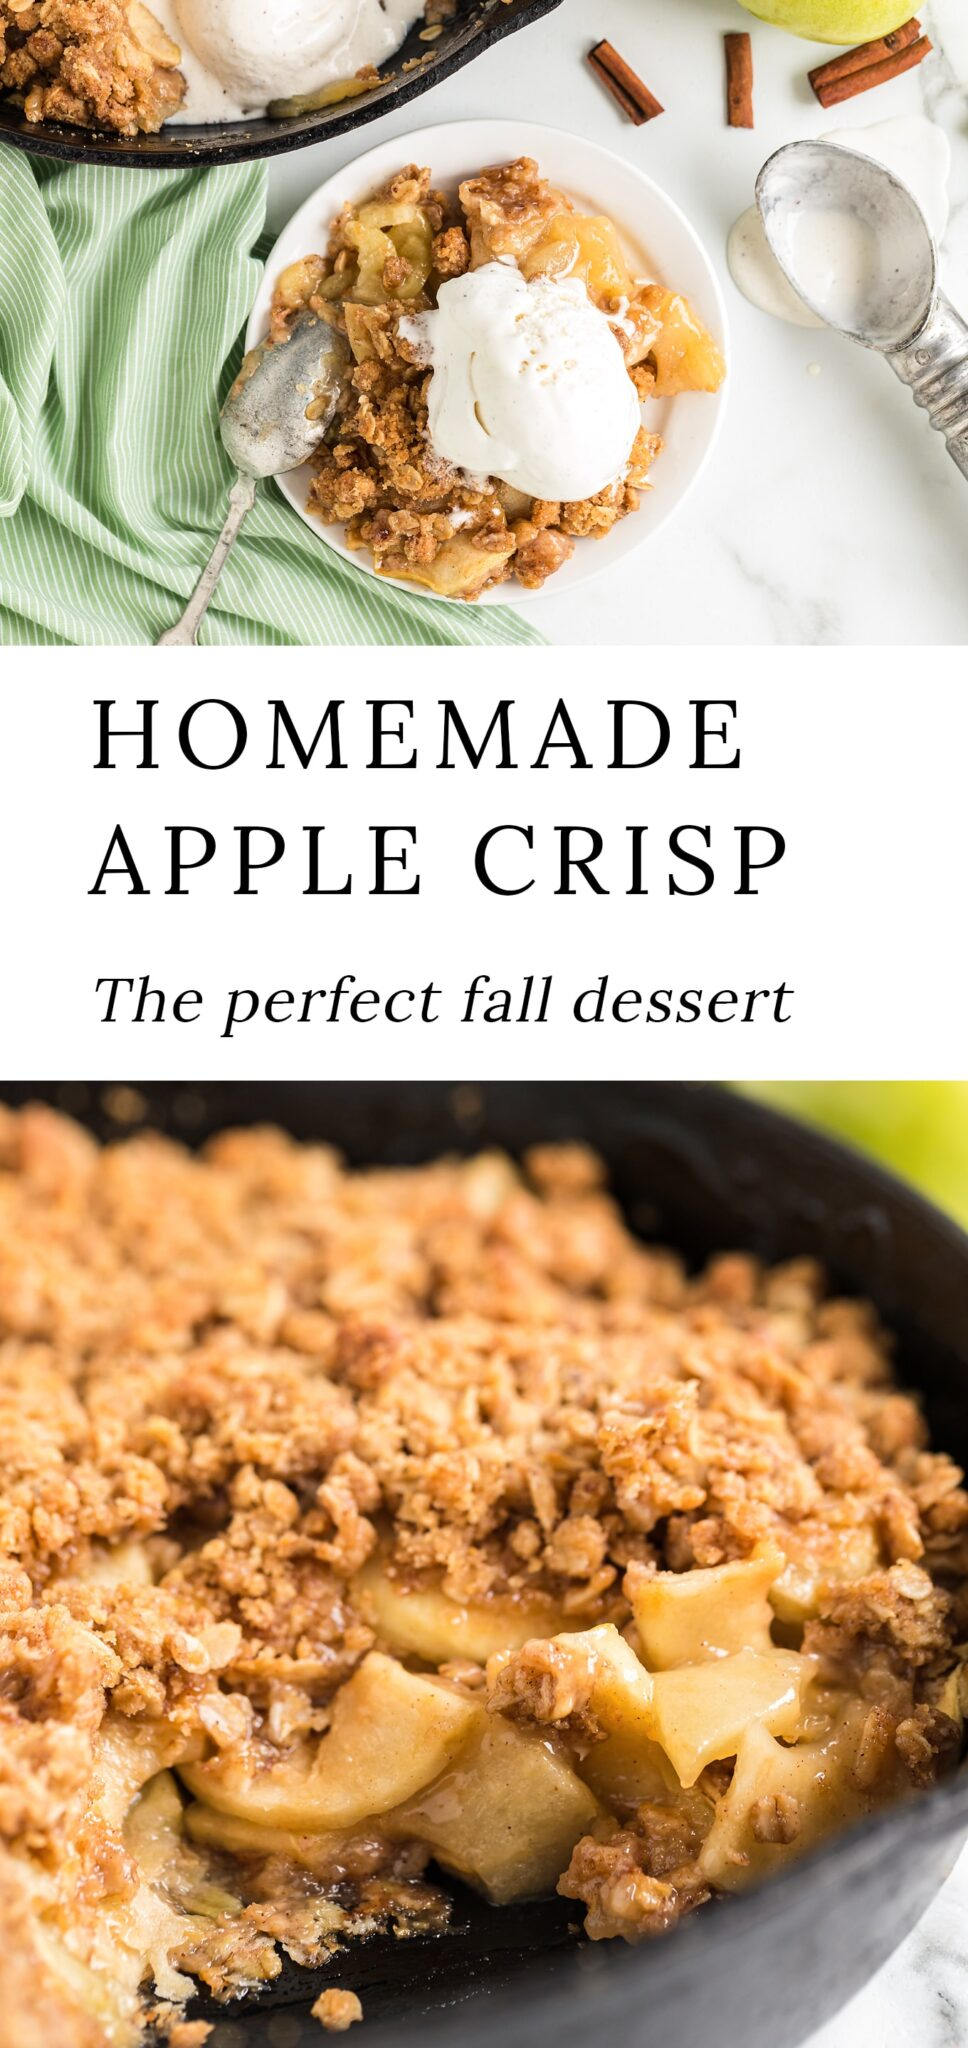 Our favorite homemade apple crisp is bursting with sweet apple flavor. This fall treat is best served fresh from the oven, so get ready to bake some today! #applecrisp #baking #recipes via @firefliesandmudpies